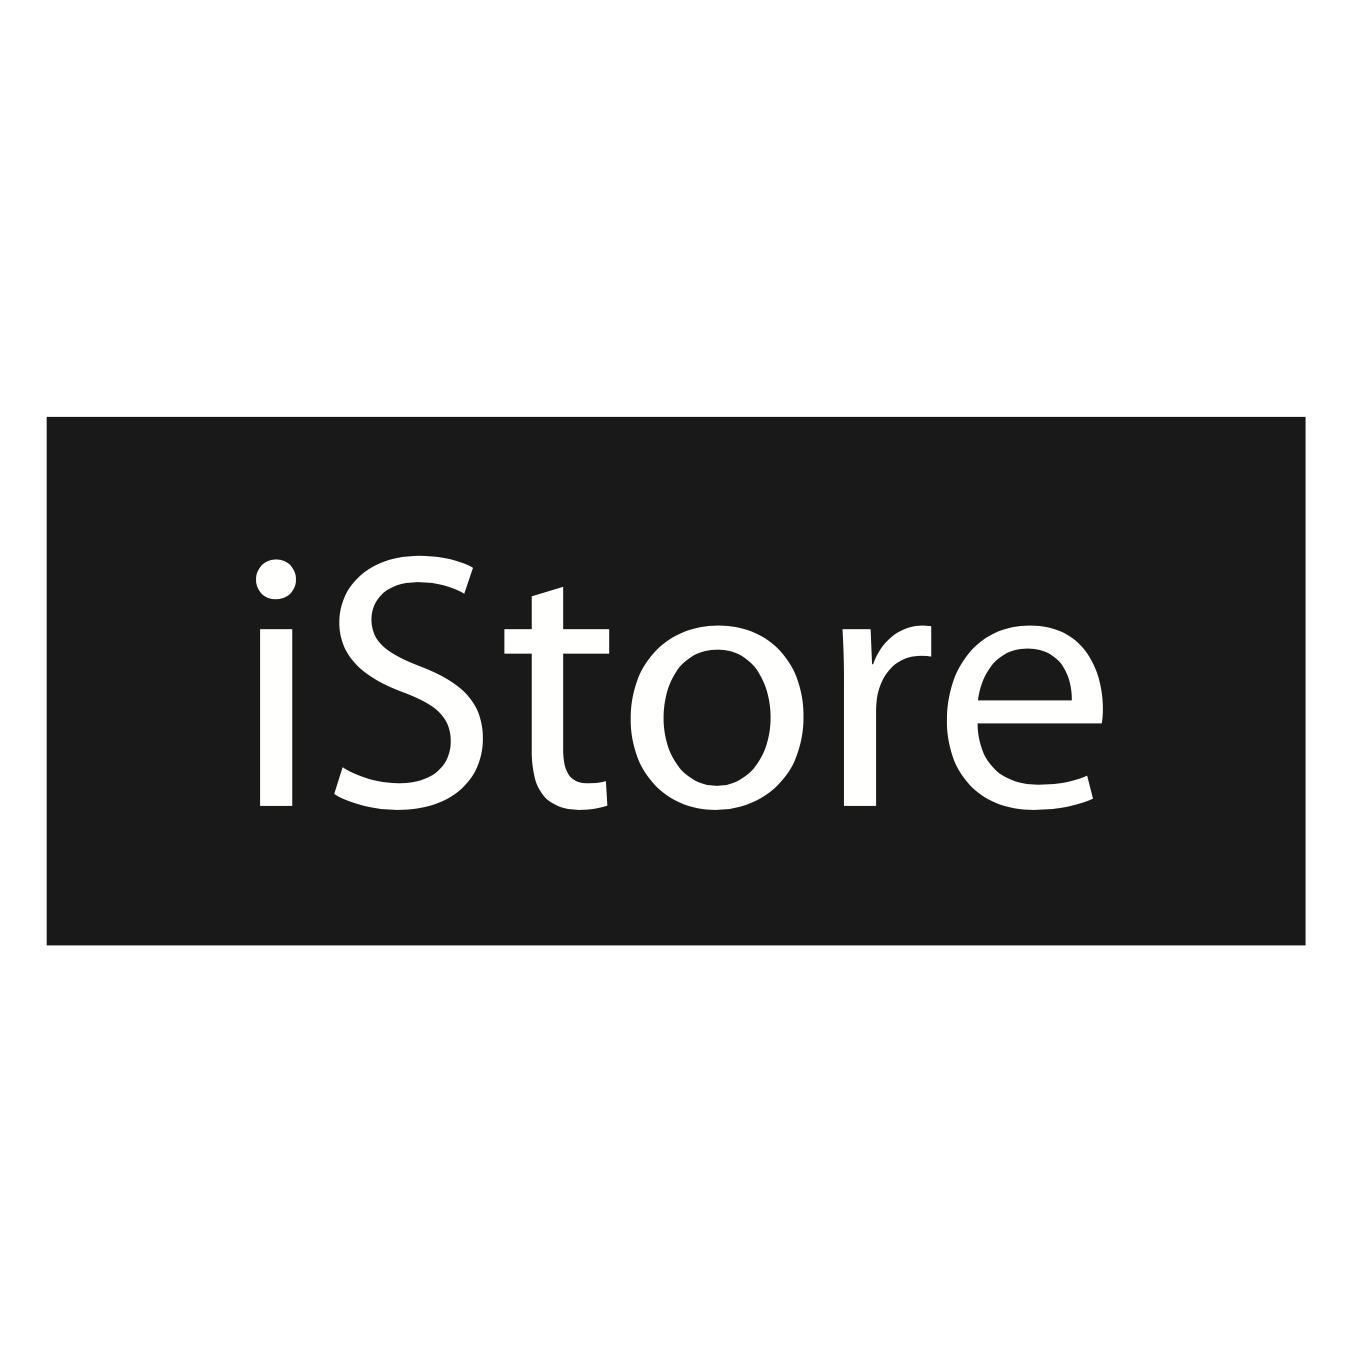 From iPhoneography to iStore Makers